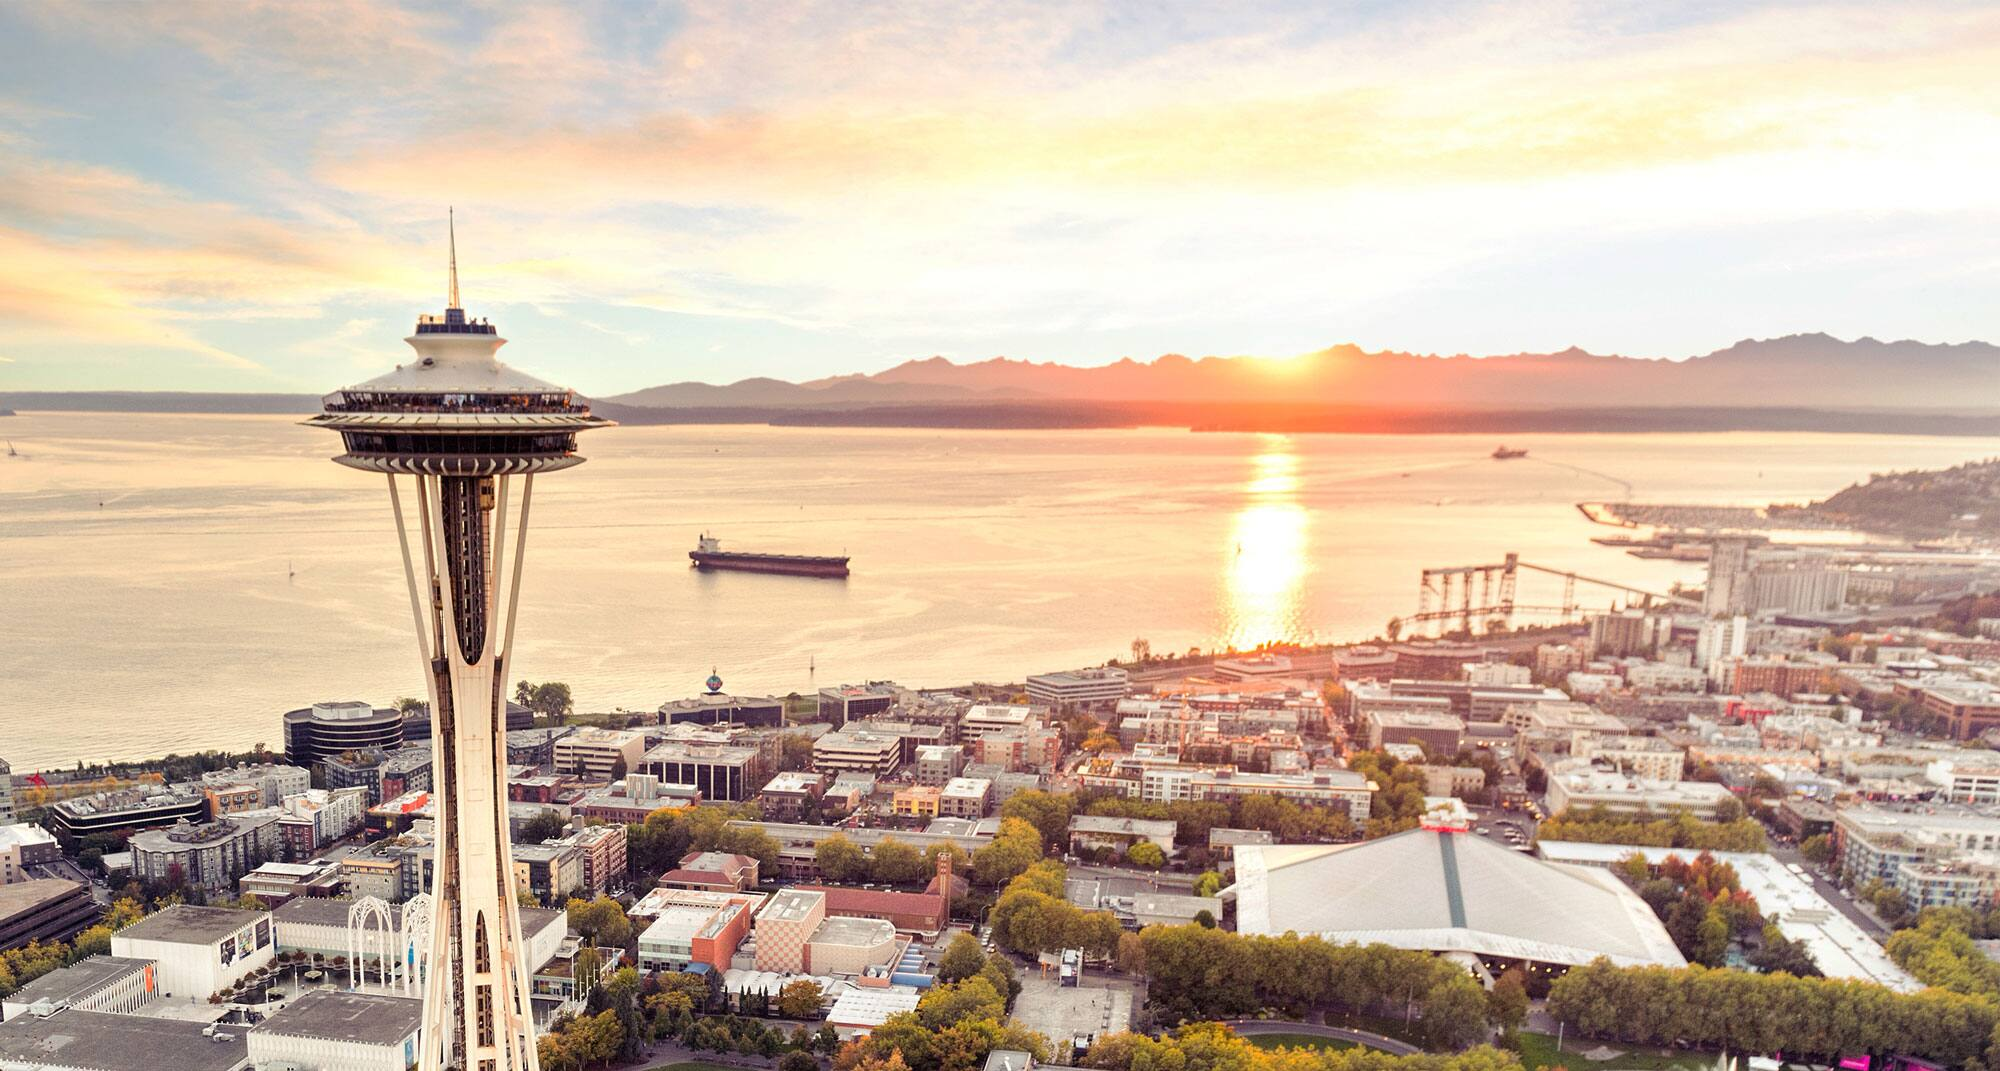 Raleigh NC To/From Seattle $198 RT Nonstop Airfares on Delta or Alaska Airlines BE (Limited Travel Oct-Nov 2019 and Jan-Feb 2020)